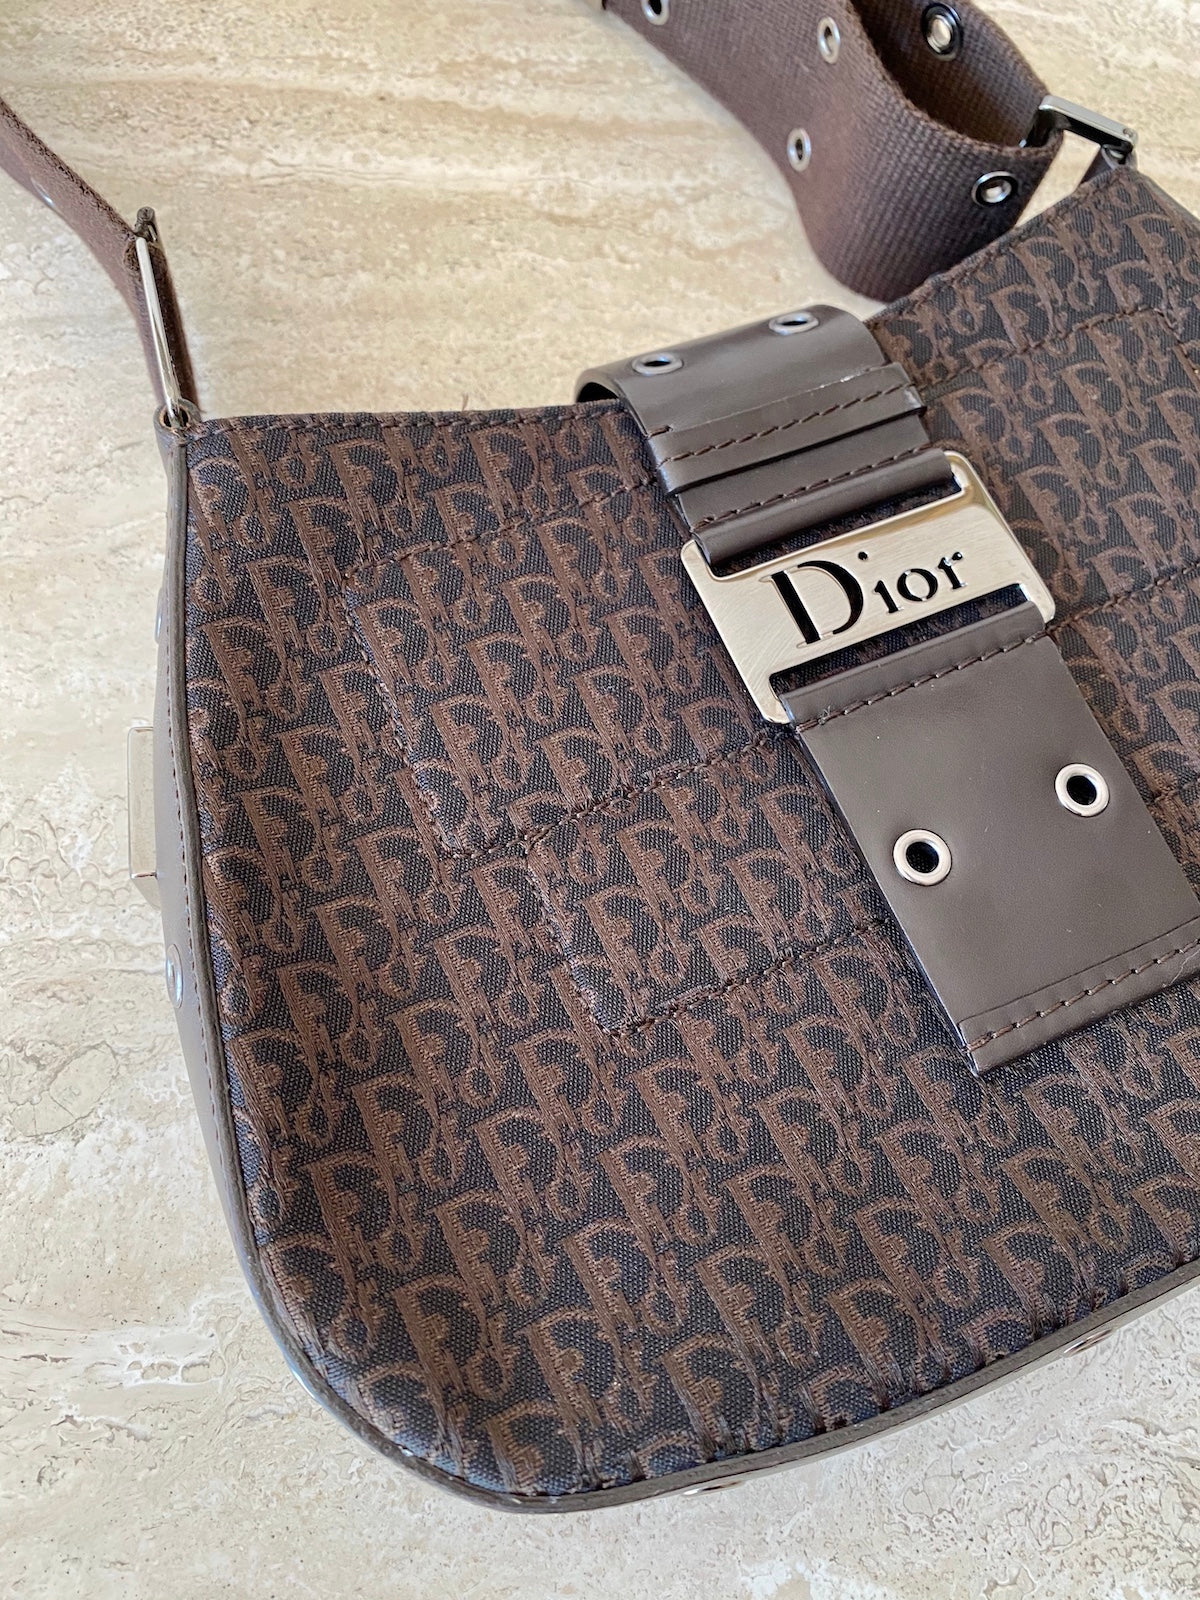 Dior Street Chic Canvas Purse + Wallet